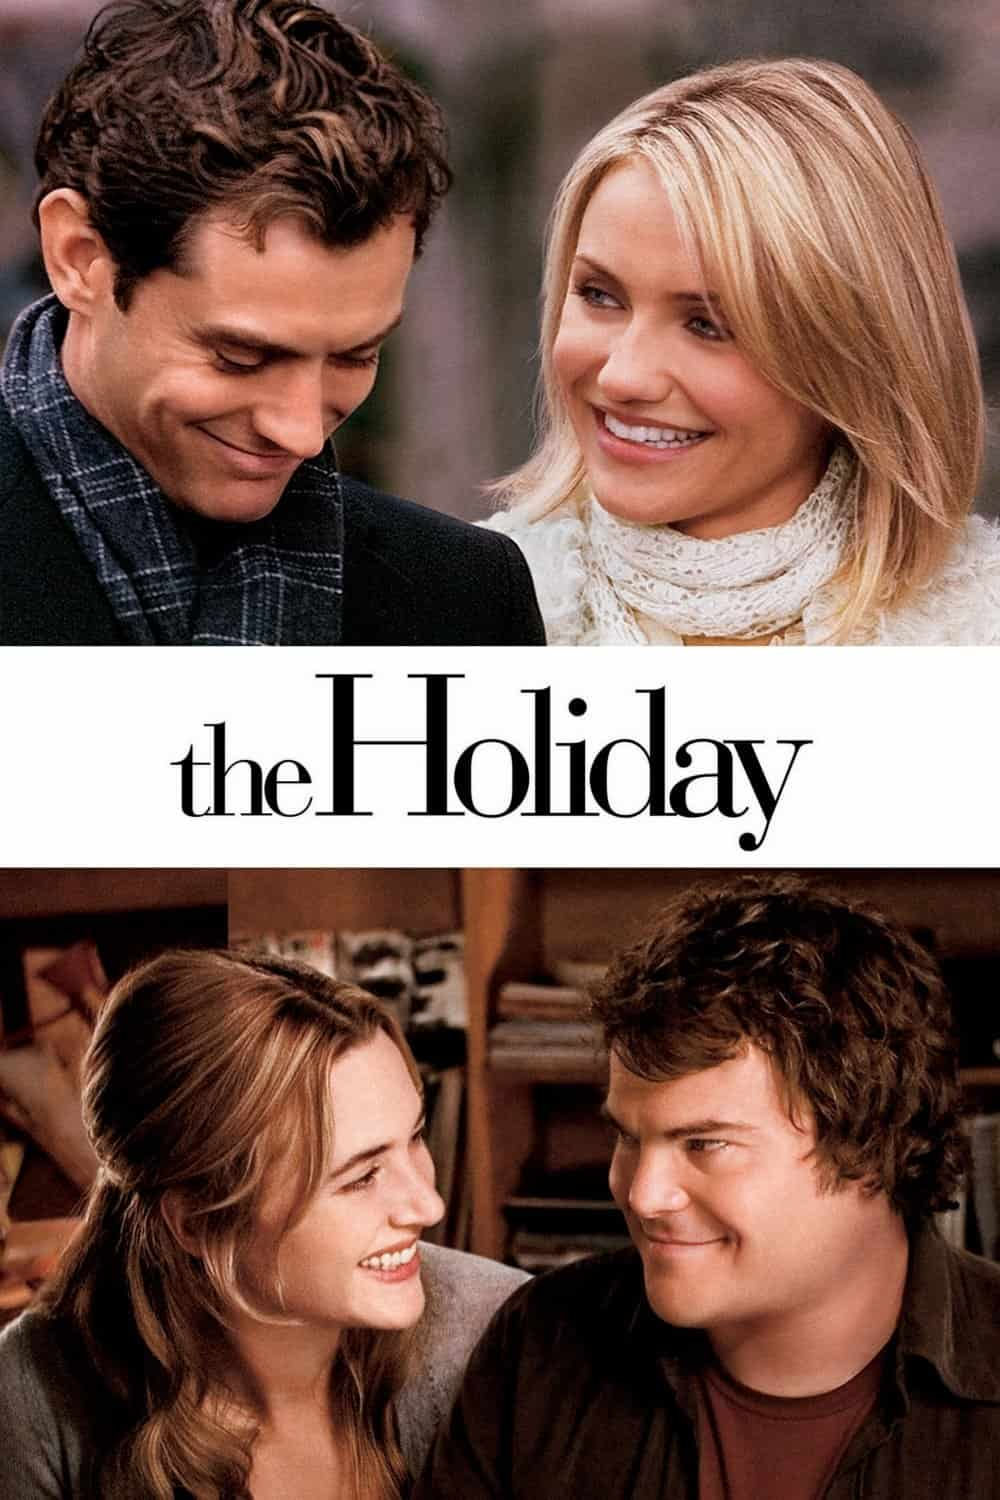 The Holiday, 2006